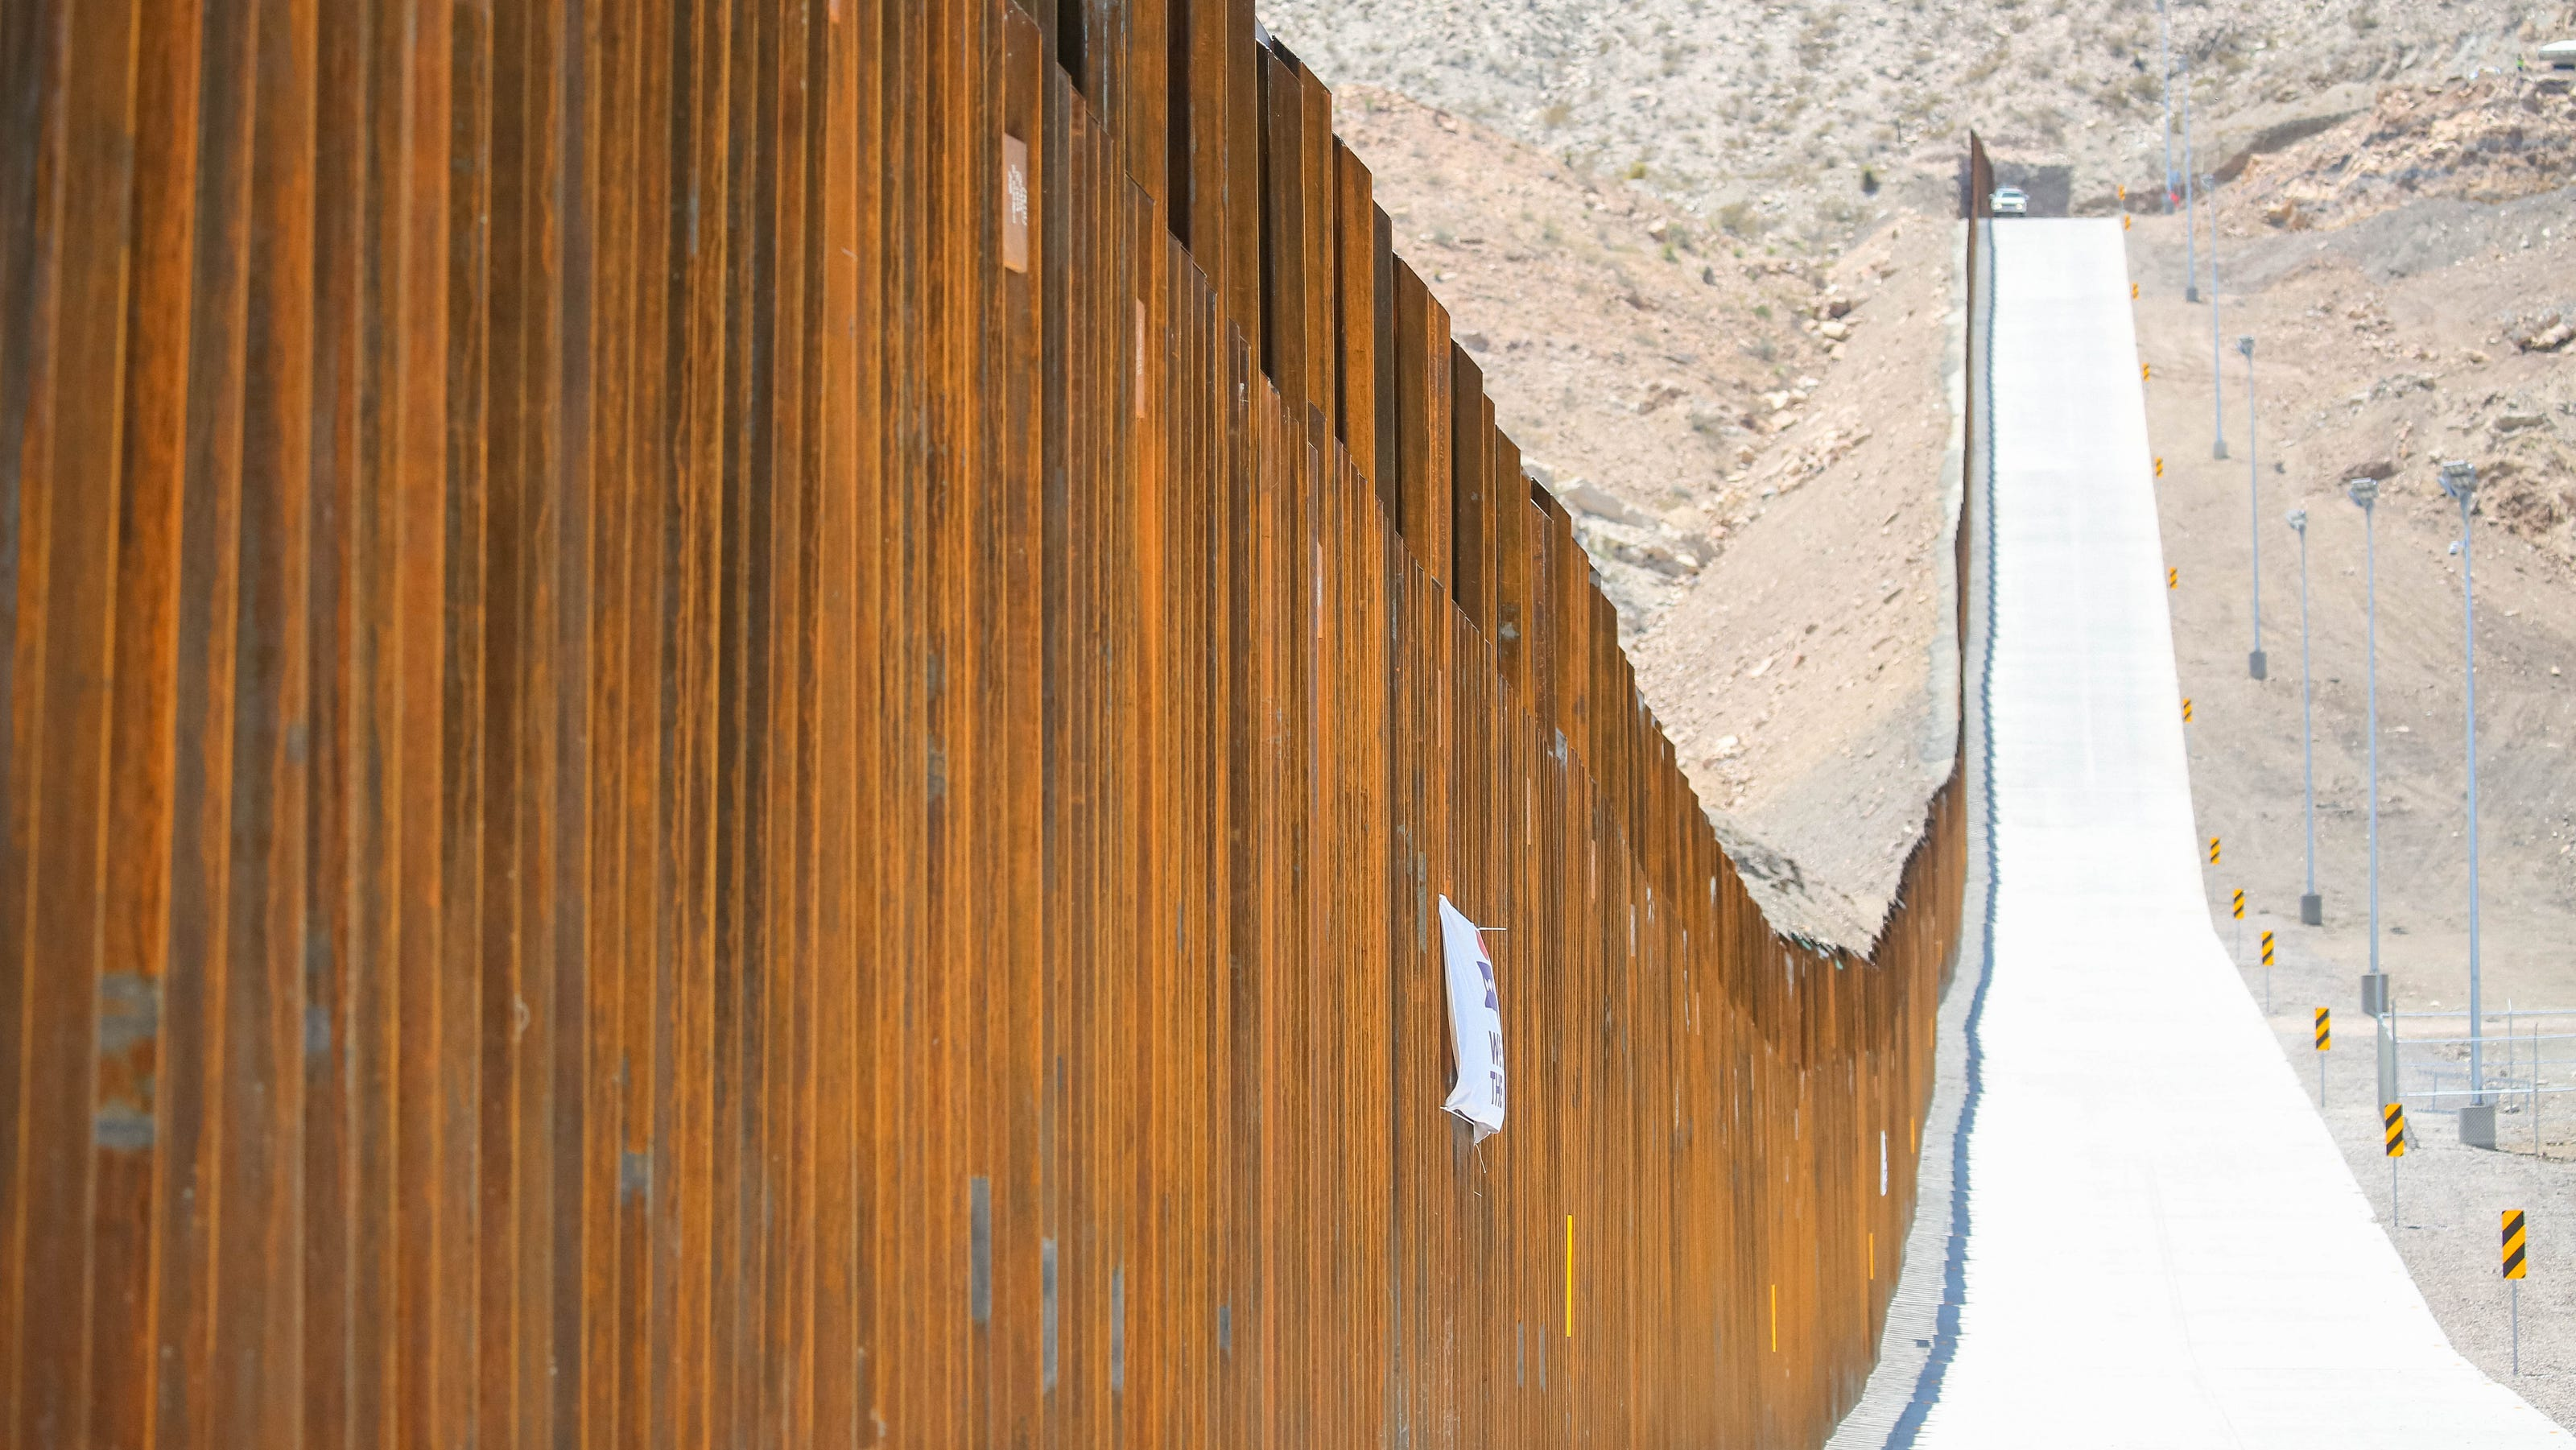 More federal land in New Mexico and Arizona transferred for border fencing